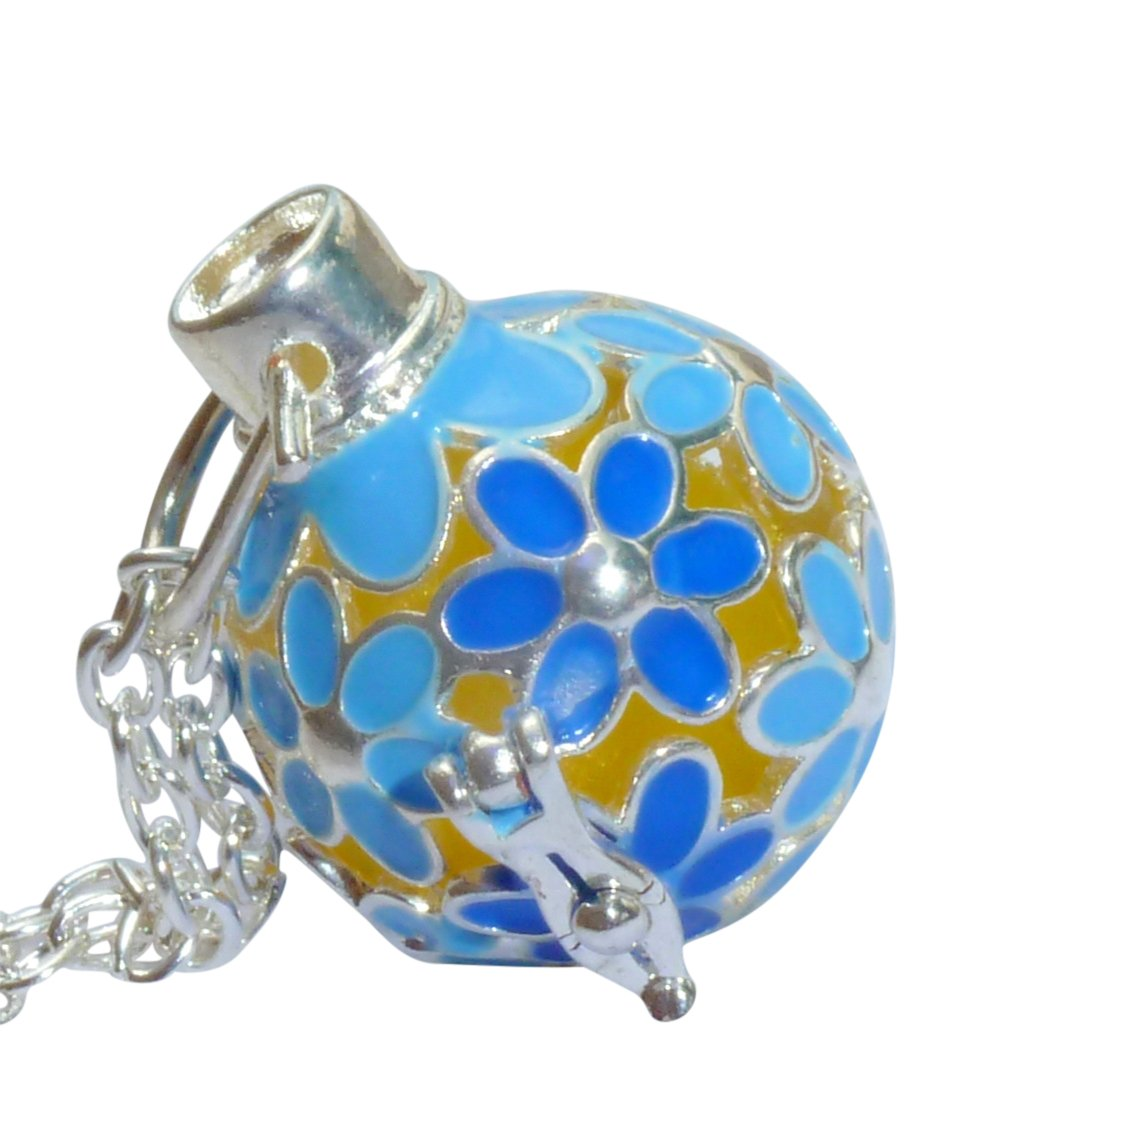 UMBRELLALABORATORY Your Personal Stylish Essential Oil Necklace Steampunk Blue Flowers d1 0